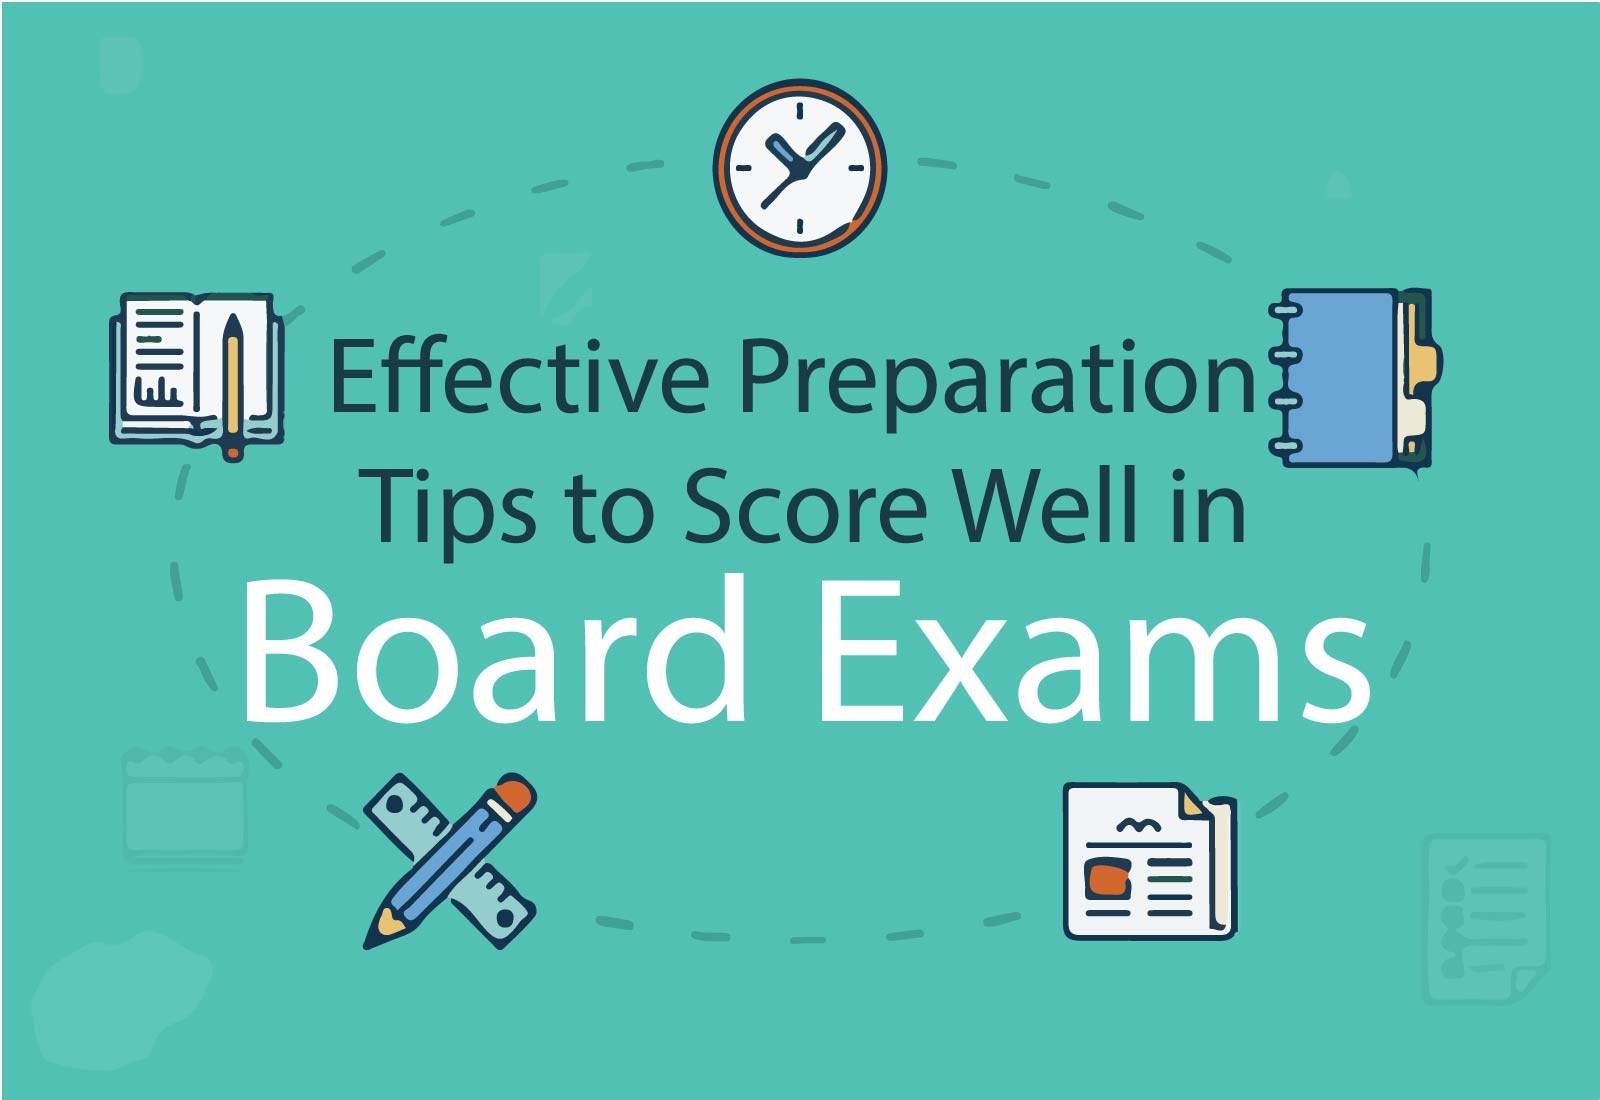 How TO Study for HSEB Boards Exam: 9 Ways to Prepare for Your HSEB Board Exam